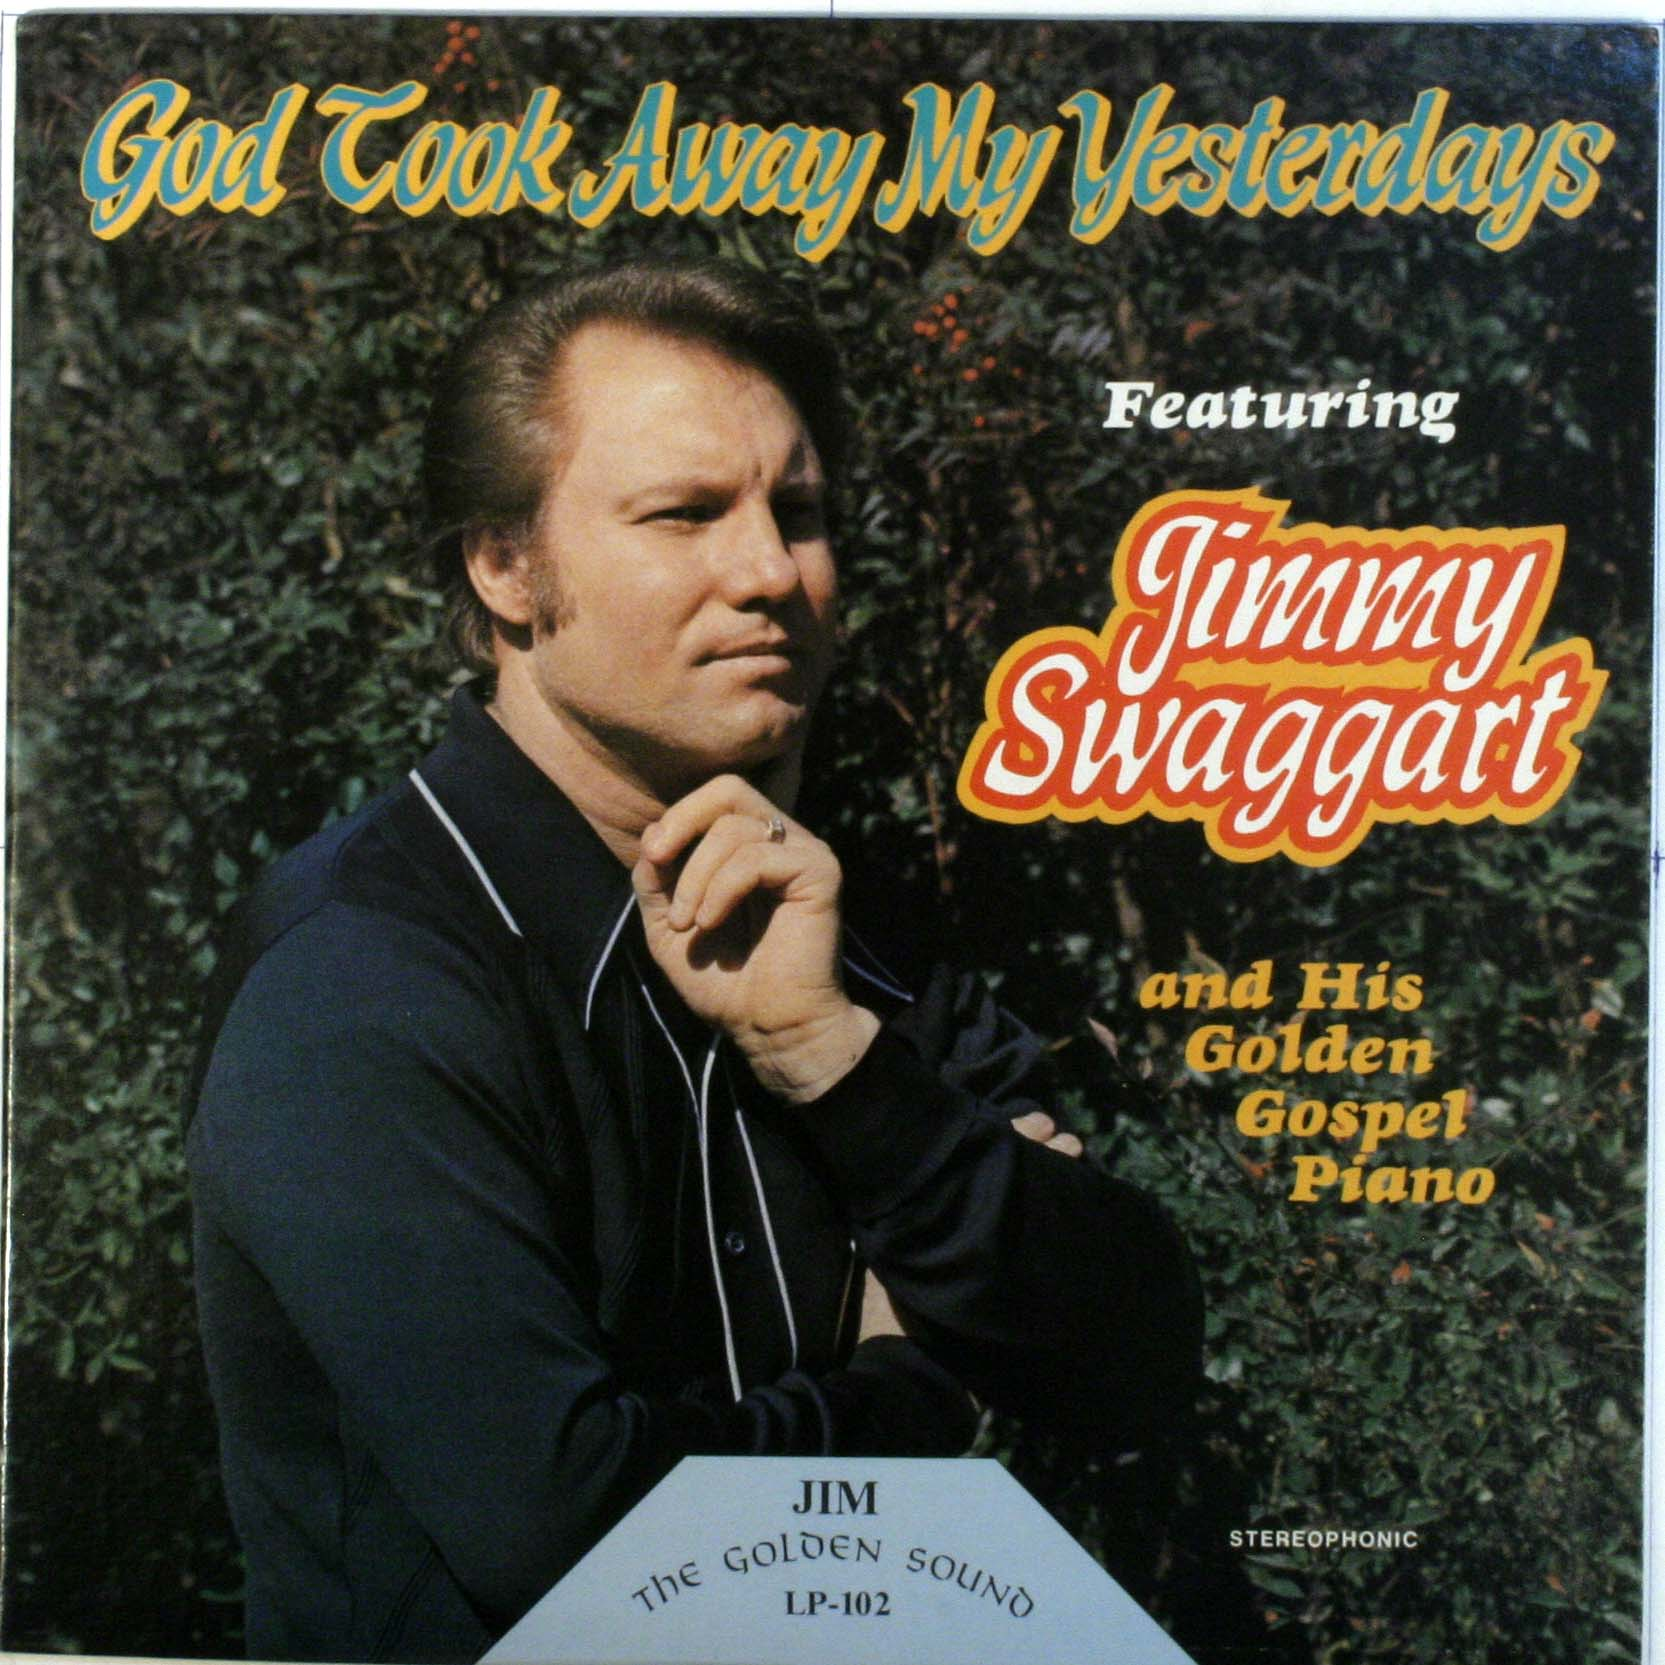 Jimmy Swaggart - God Took Away My Yesterdays